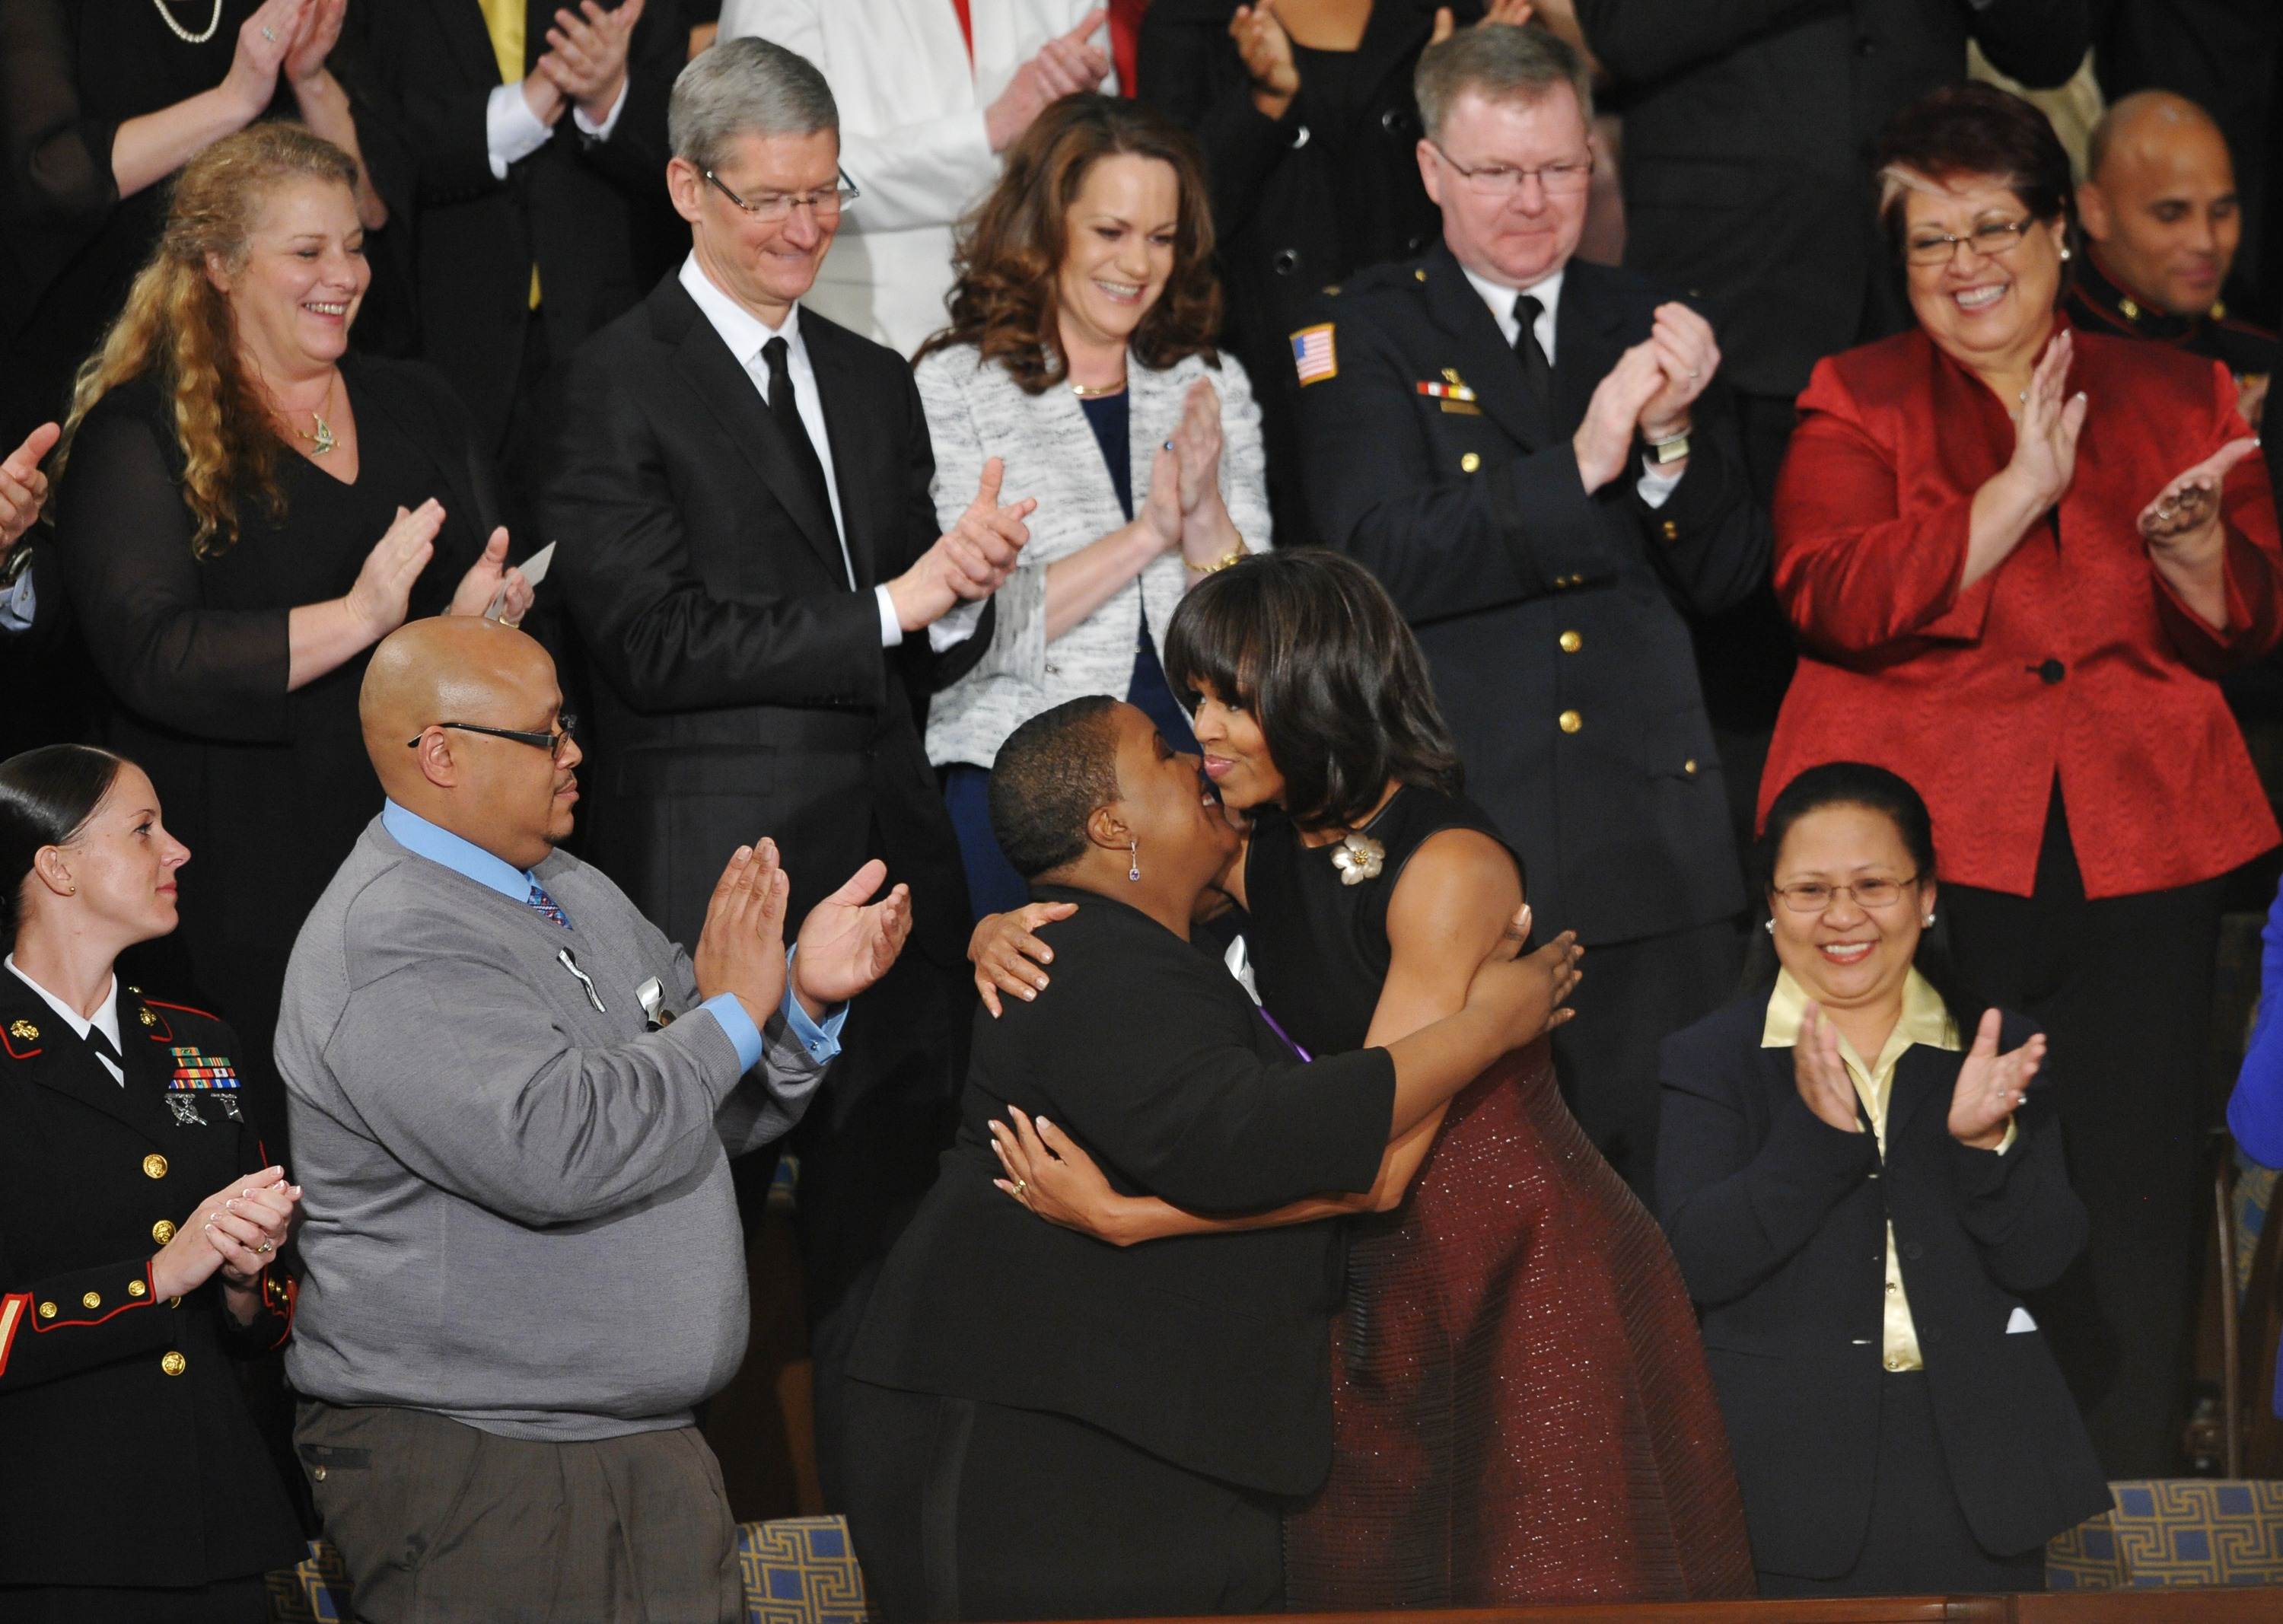 First Lady Michelle Obama hugs Cleopatra Cowley-Pendleton as Nathaniel A. Pendleton Sr., left, look on before the start ofthe State of the Union address before a joint session of Congress on Feb. 12, 2013 at the US Capitol in Washington, D.C. The Pendletons are the parents of Hadiya, a fifteen year-old who was gunned down in Chicago's South Side just days after she performed at Barack Obama's inauguration on Jan. 21.